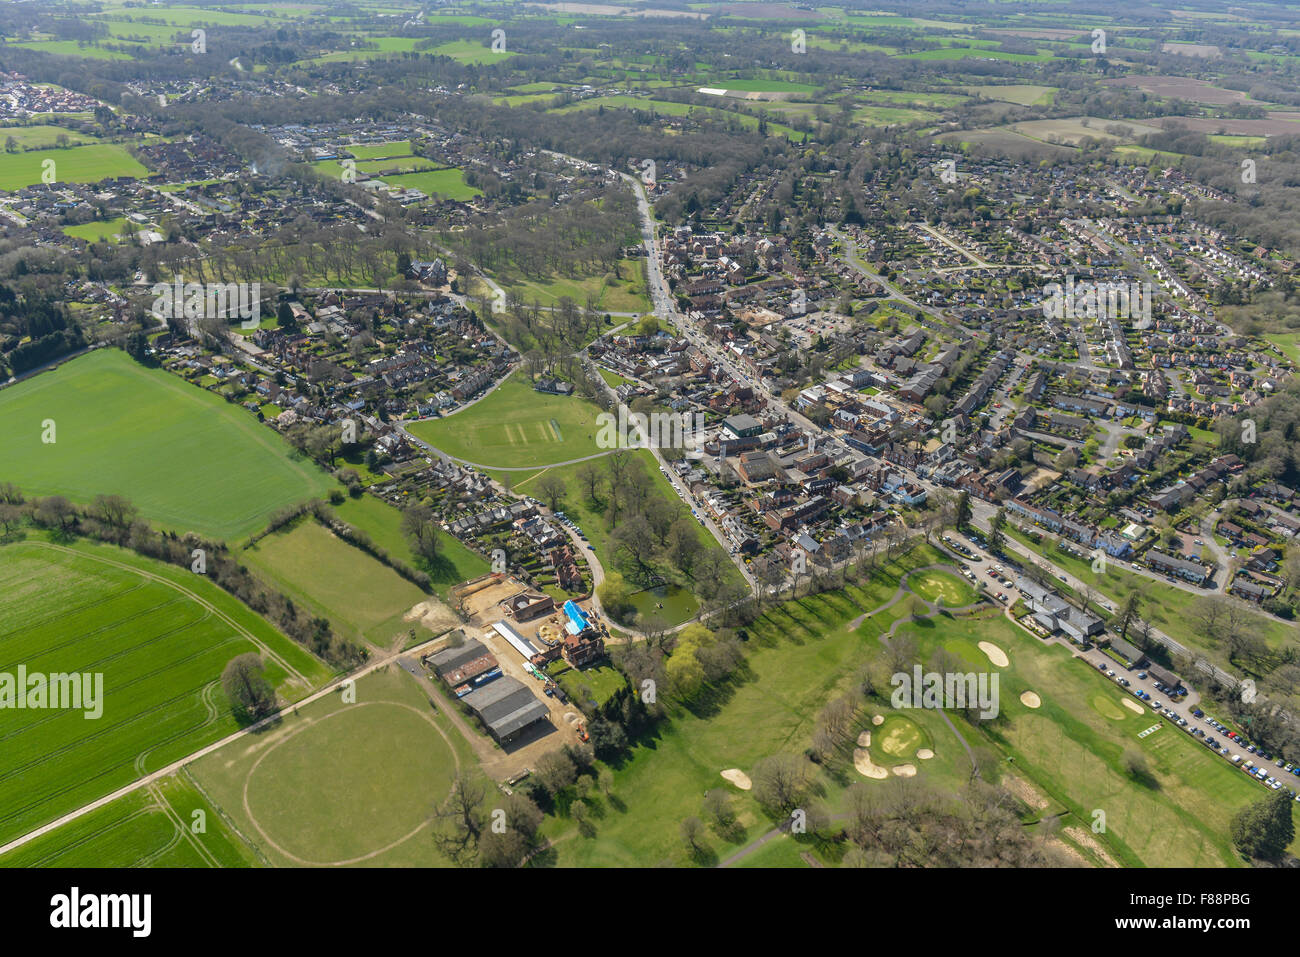 An aerial view of the Hampshire village of Hartley Wintney, close to Hook and Farnborough - Stock Image